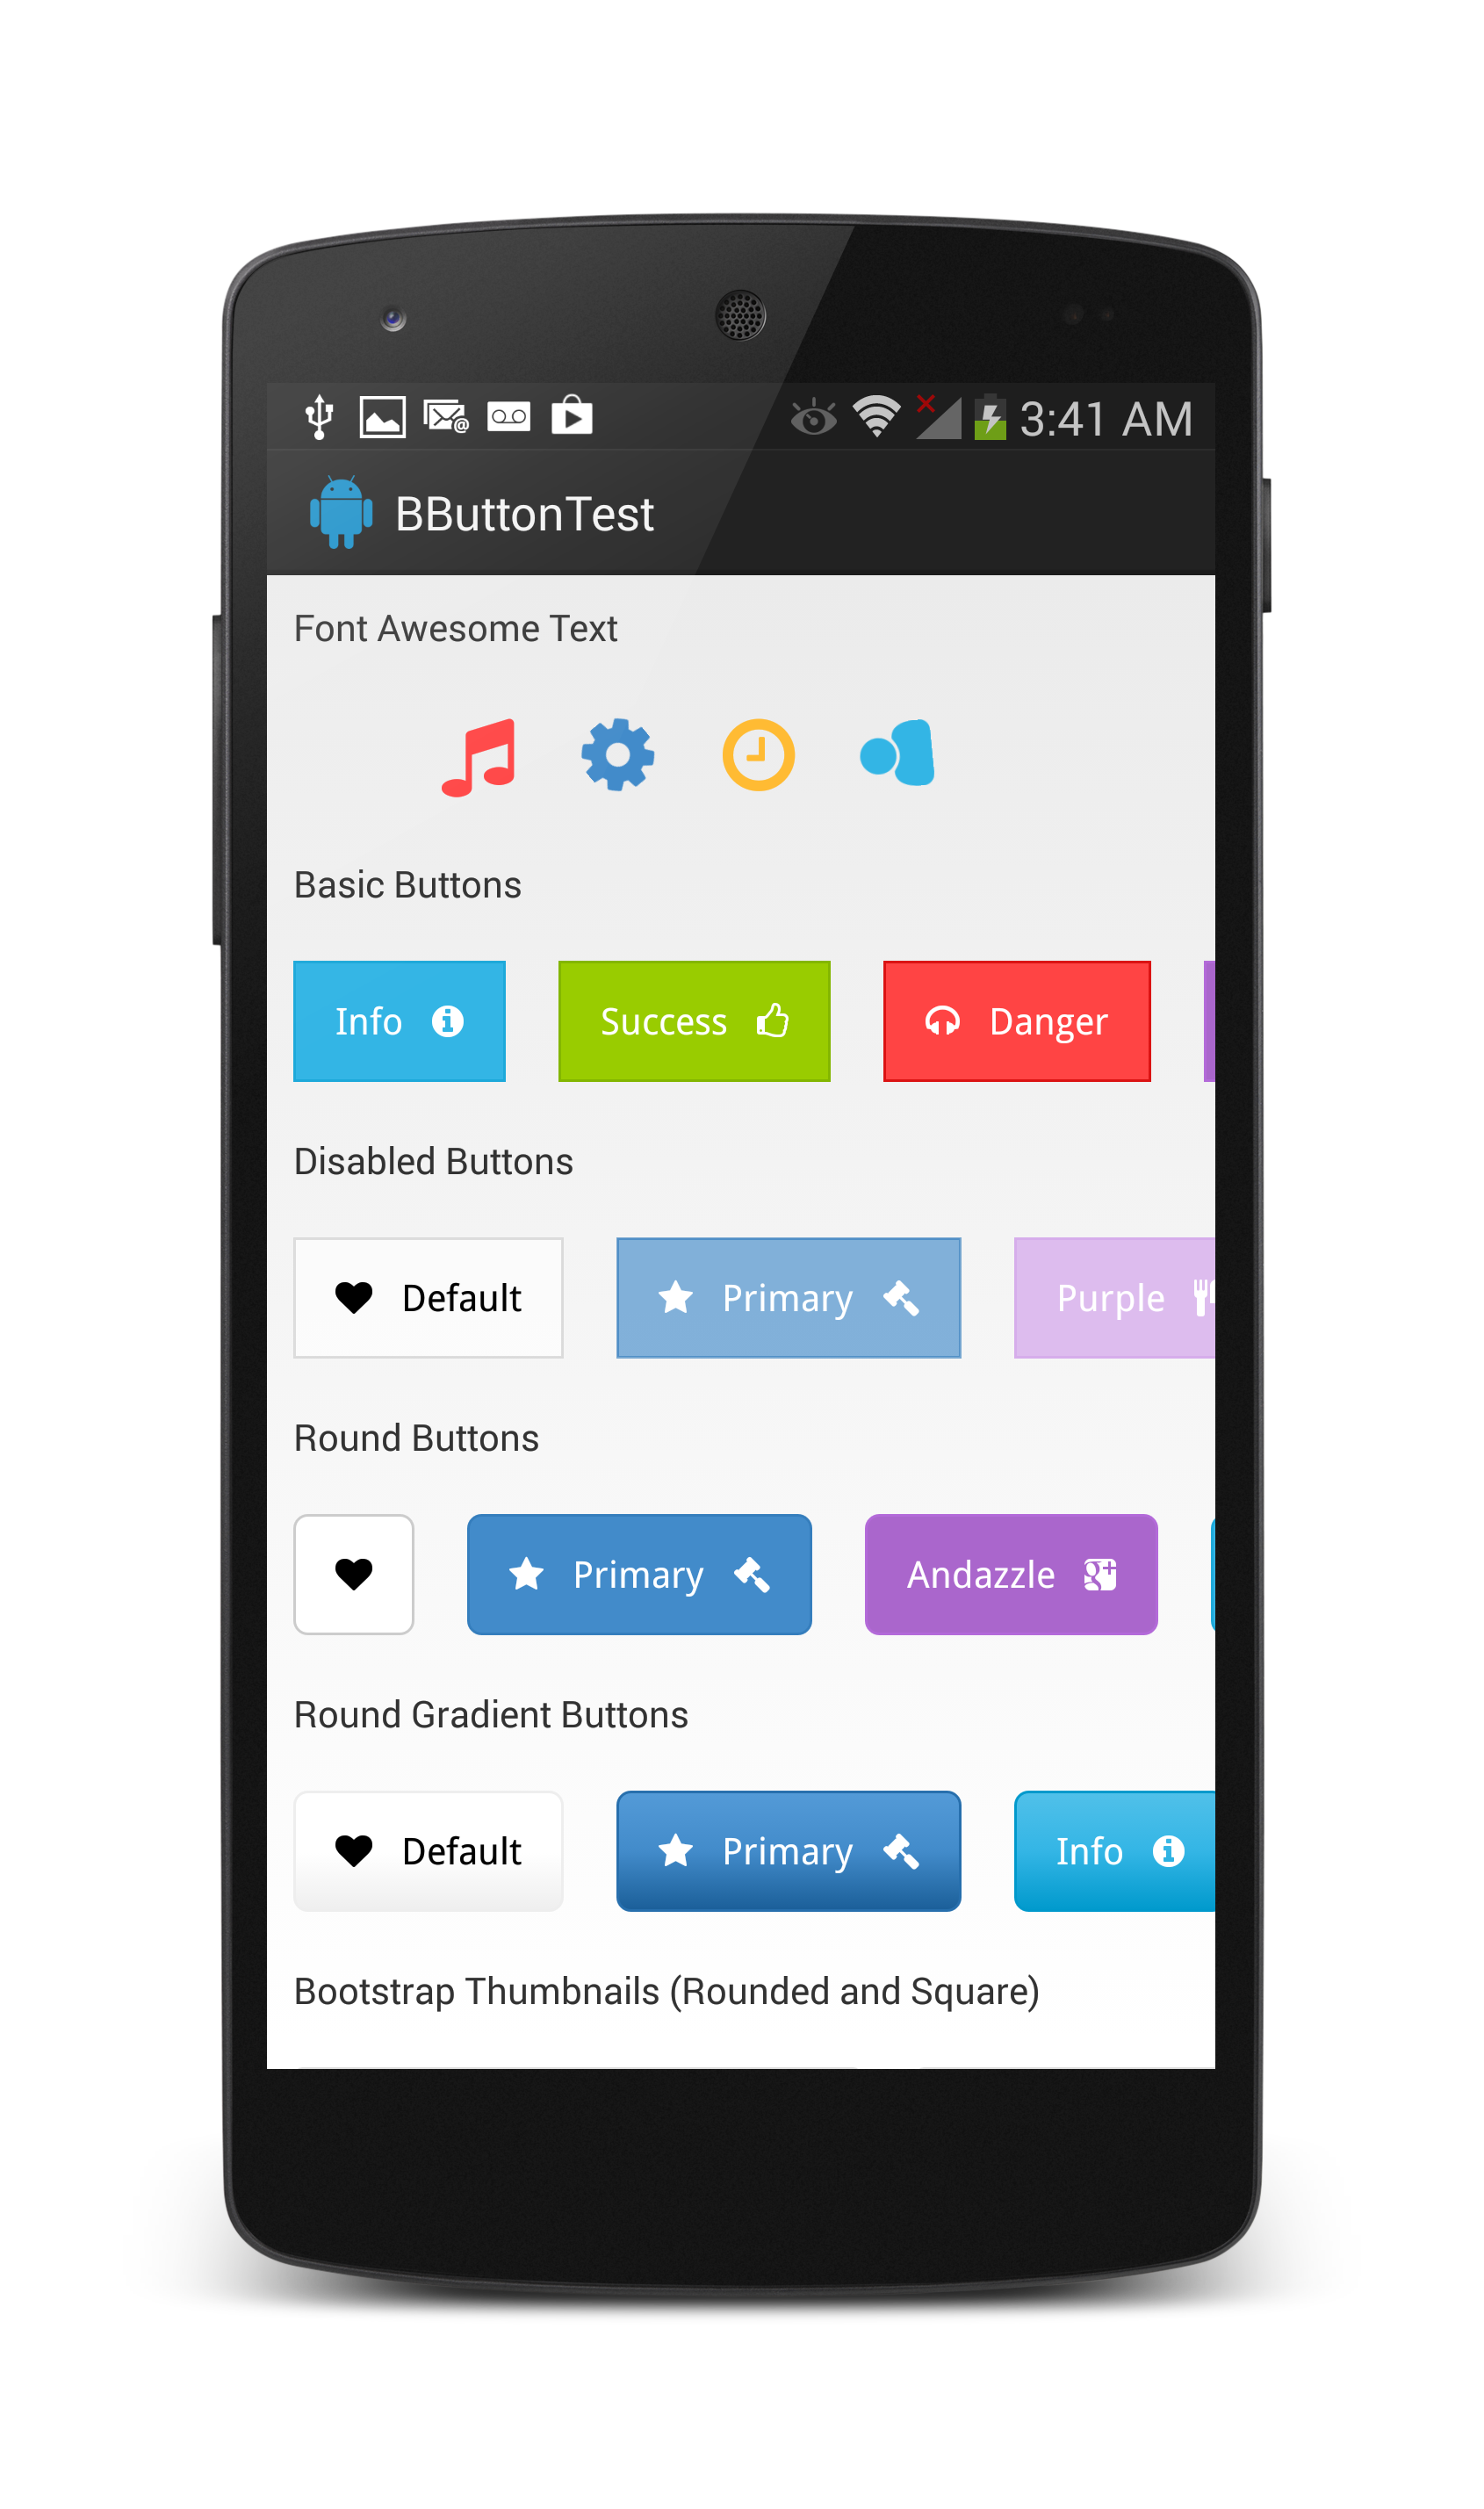 theDazzler/Android-Bootstrap - Libraries io